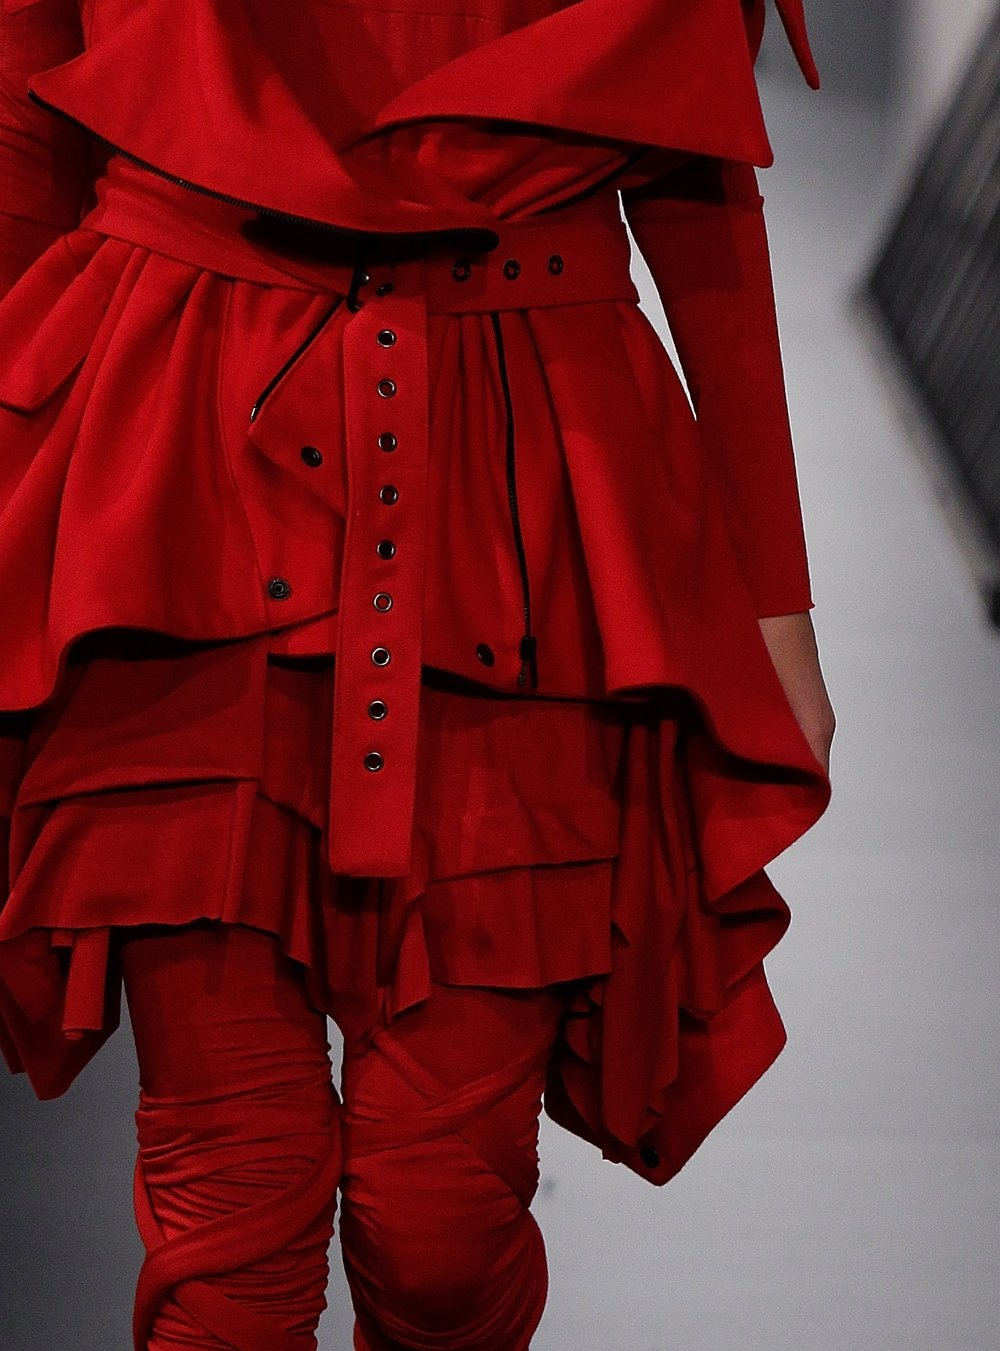 WINTER 10_CROP RED 1.jpg